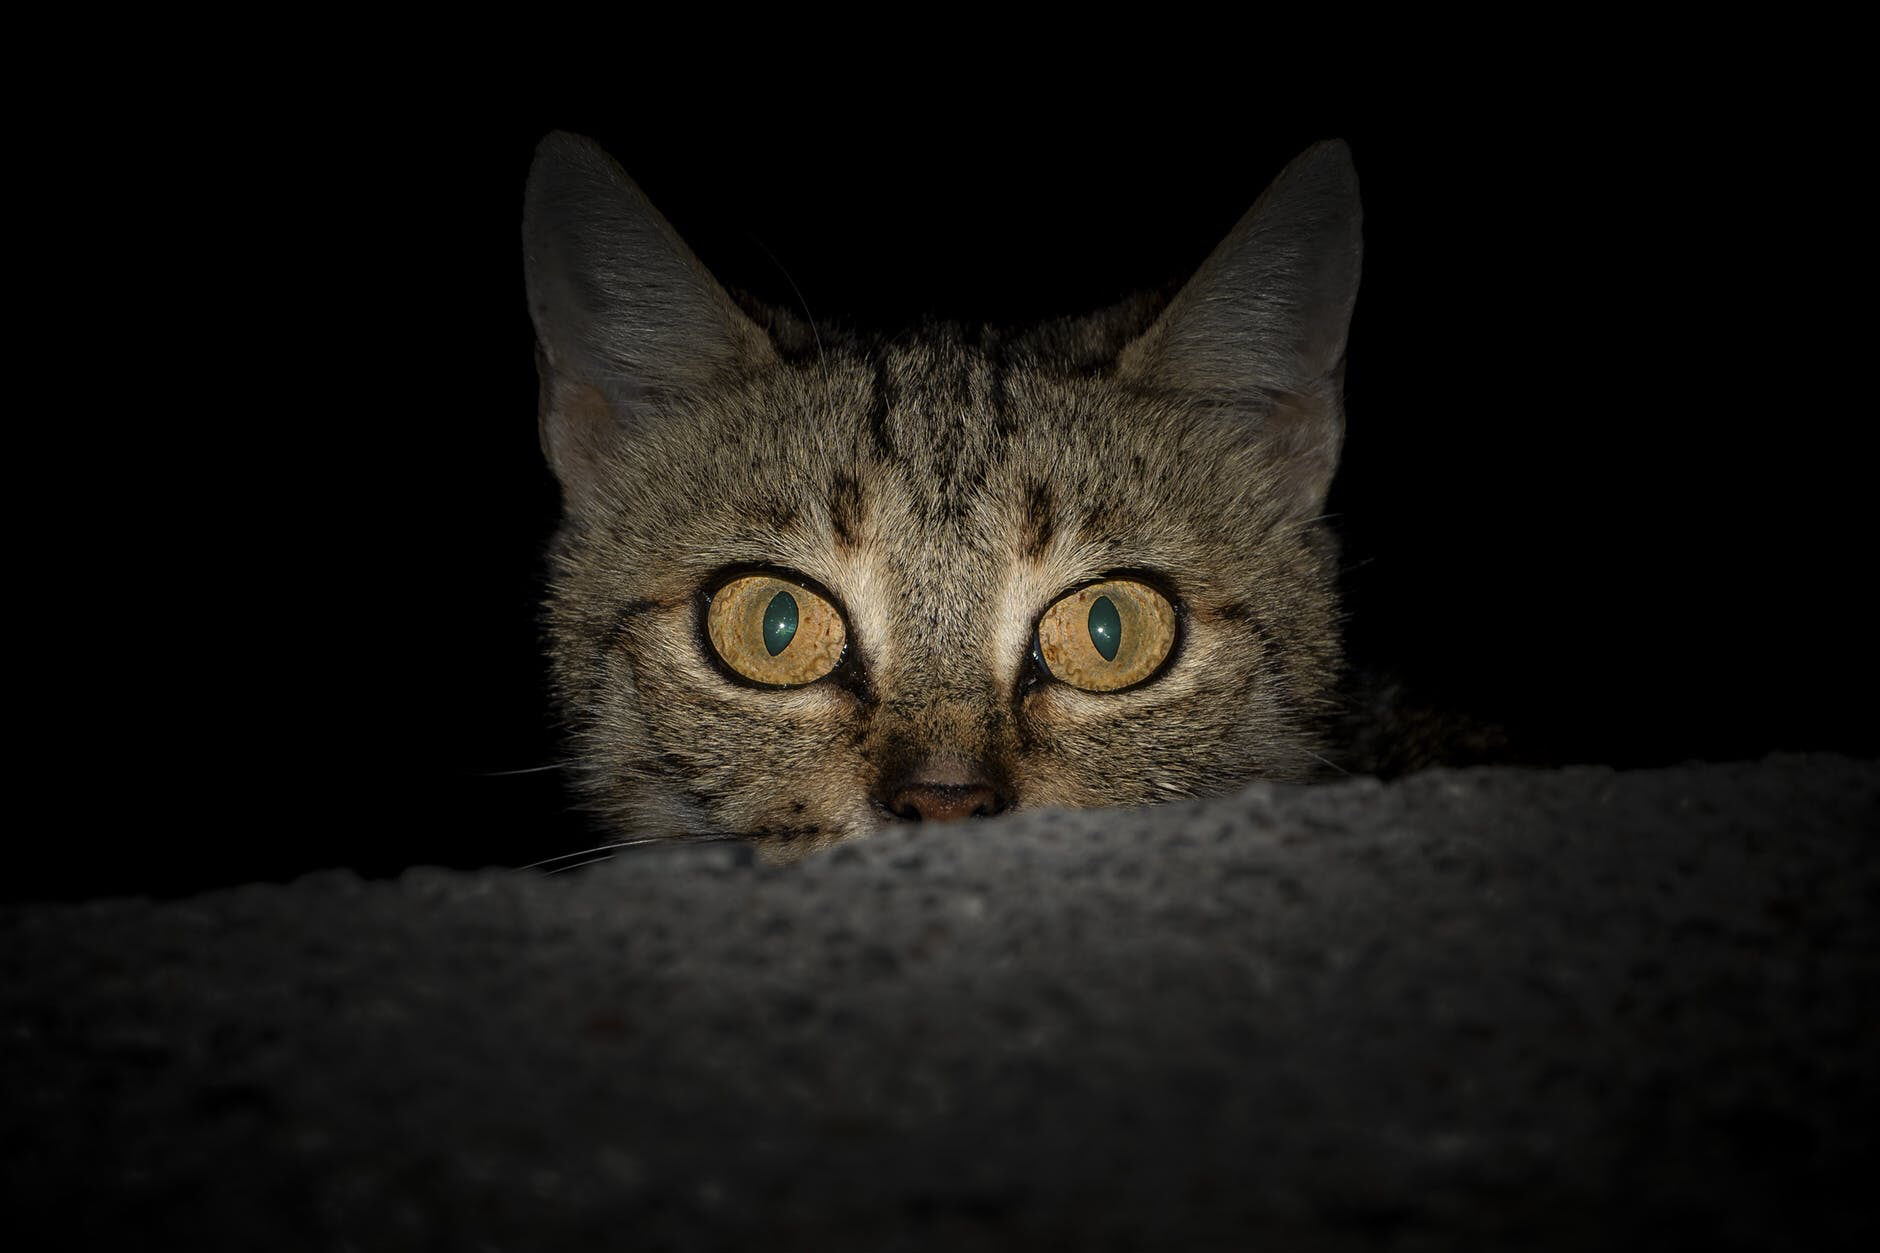 Cats are nocturnal - they are night creatures. In case you didn't know it, but cats are nocturnal. That means they do the most at night. Cats have great night vision. They have six to eight times more rod cells. That helps with low light settings.Their whiskers help them too. That helps them judge if they can fit in places or not. So there you go, another cat fact for you.